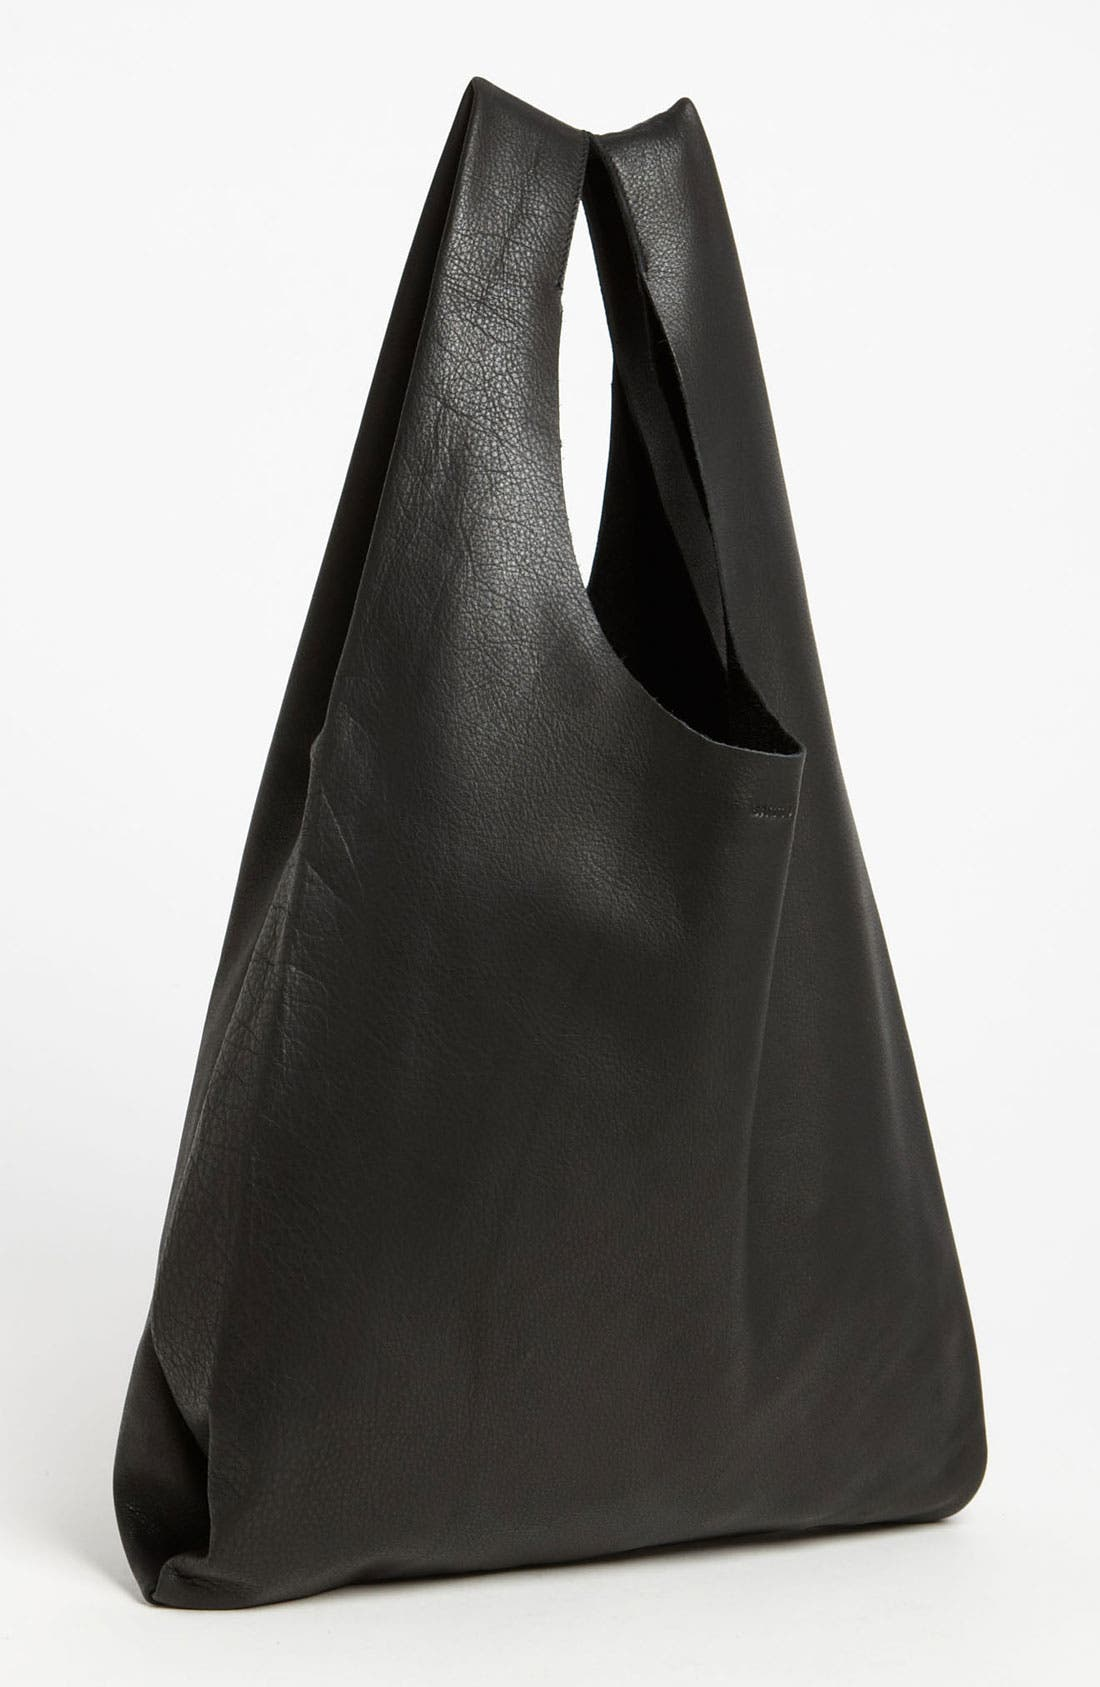 Alternate Image 1 Selected - Baggu® 'Medium' Leather Shoulder Bag